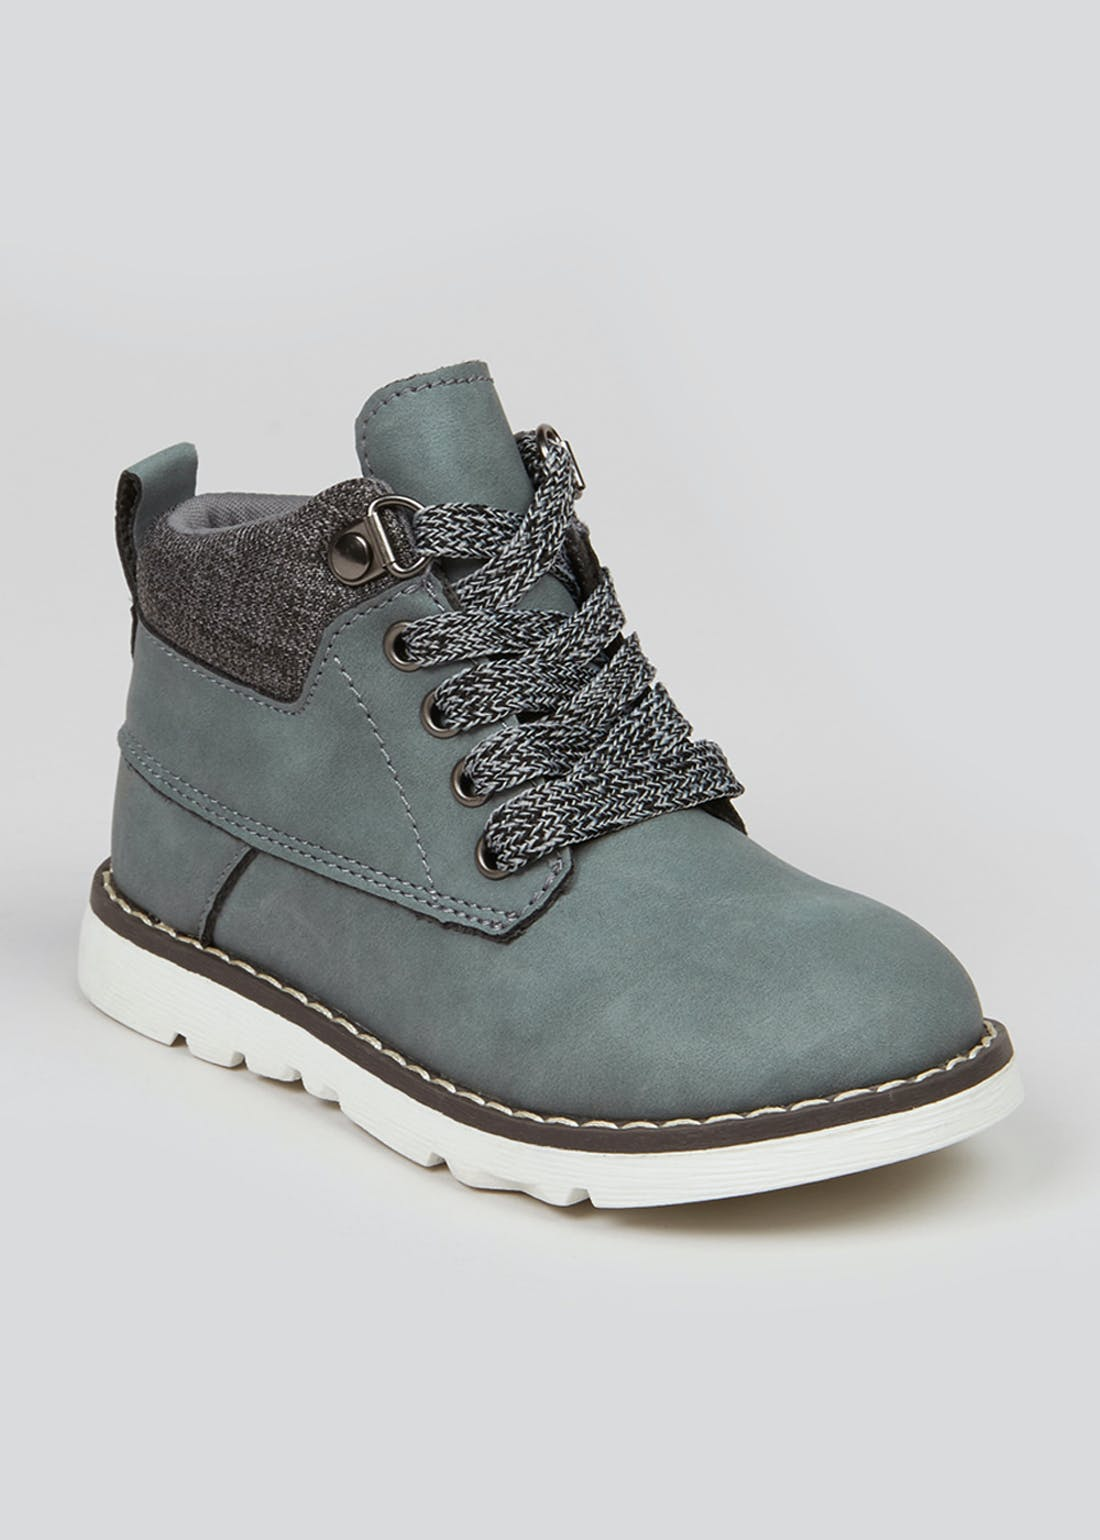 Boys Grey Lace Up Fashion Boots (Younger 4-12)